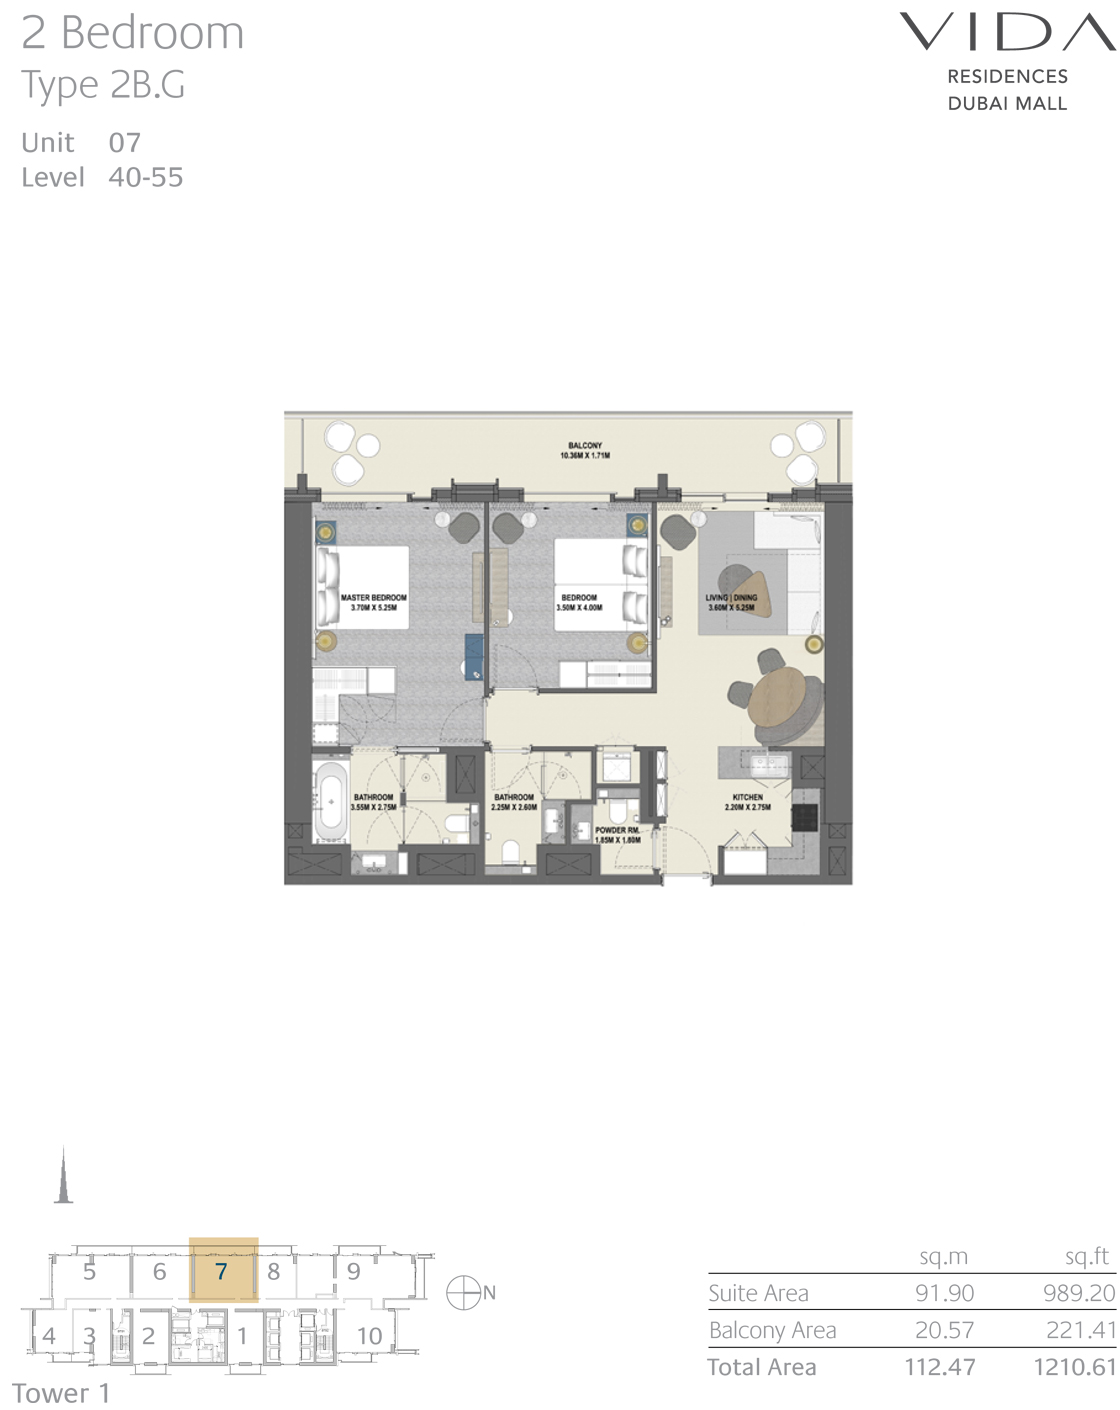 2 Bedroom Type 2B.G Unit 07 Level 40-55